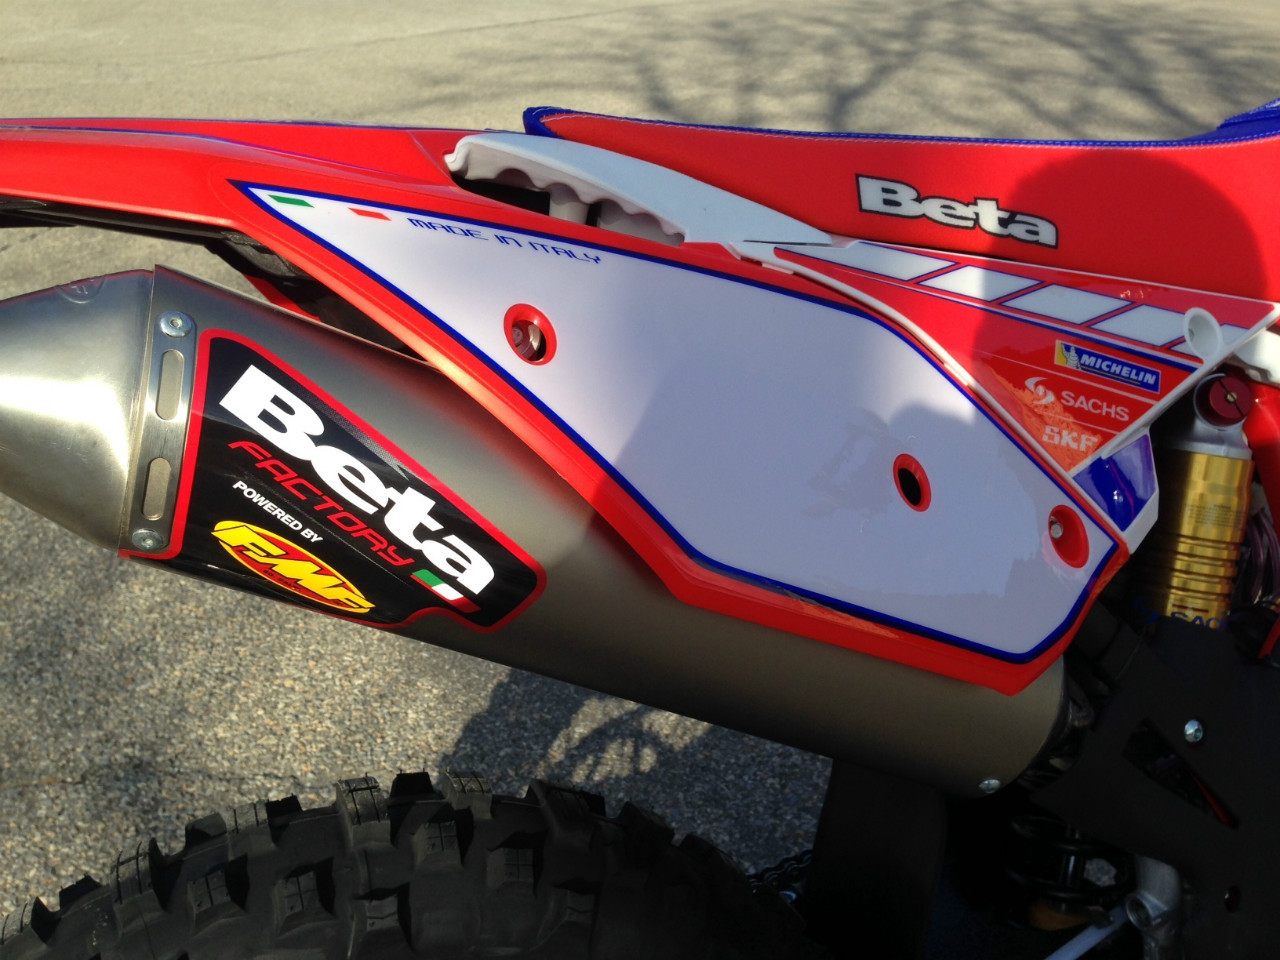 See more photos for this Beta 300 RR - RACING (RACE EDITION), 2015 motorcycle listing